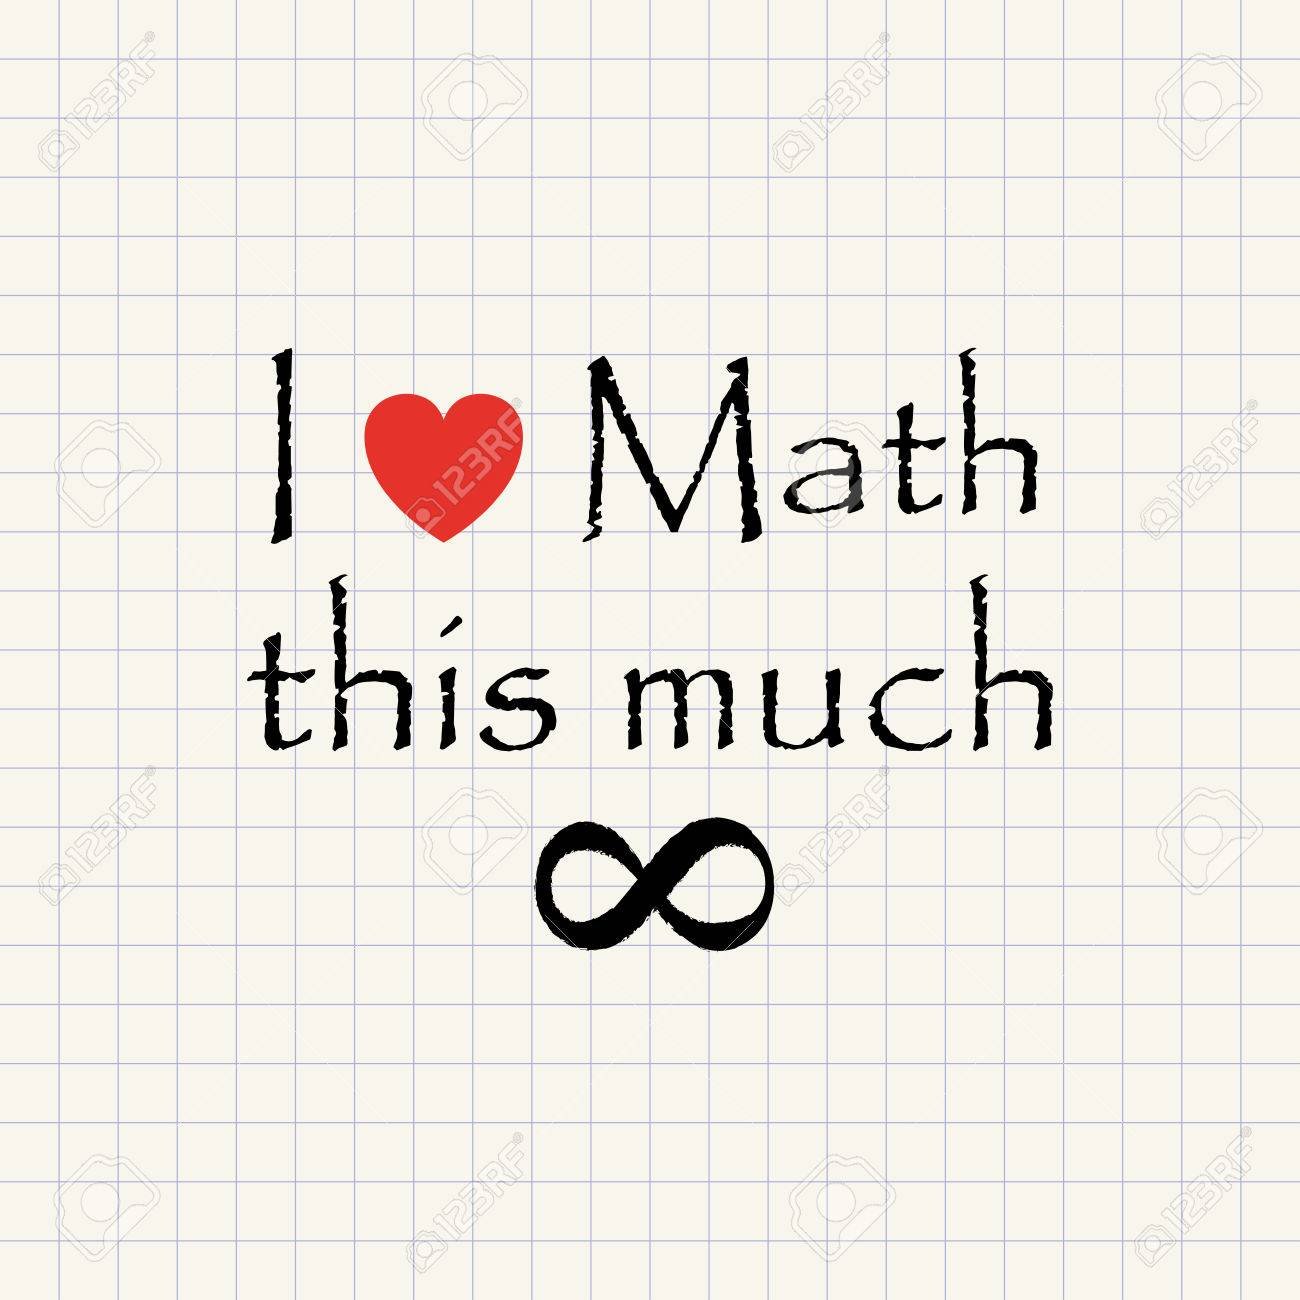 i love math - mathematical funny inscription template royalty free